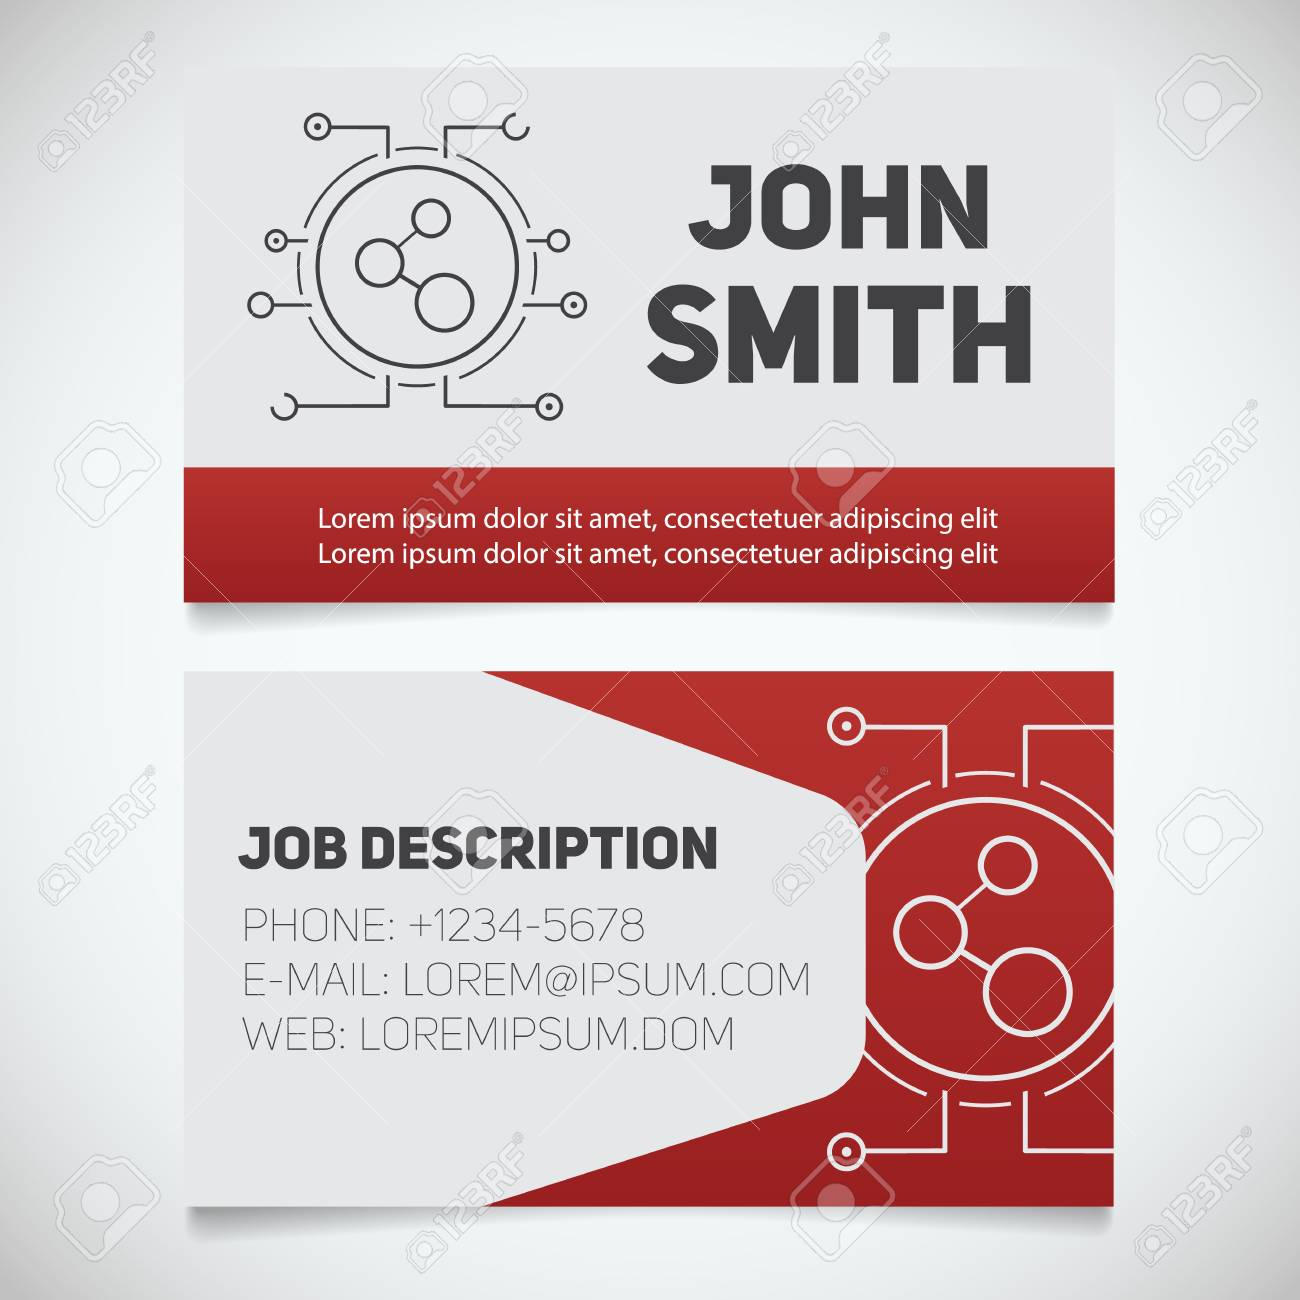 Business Card Print Template With Connection Logo Easy Edit - Business card print template